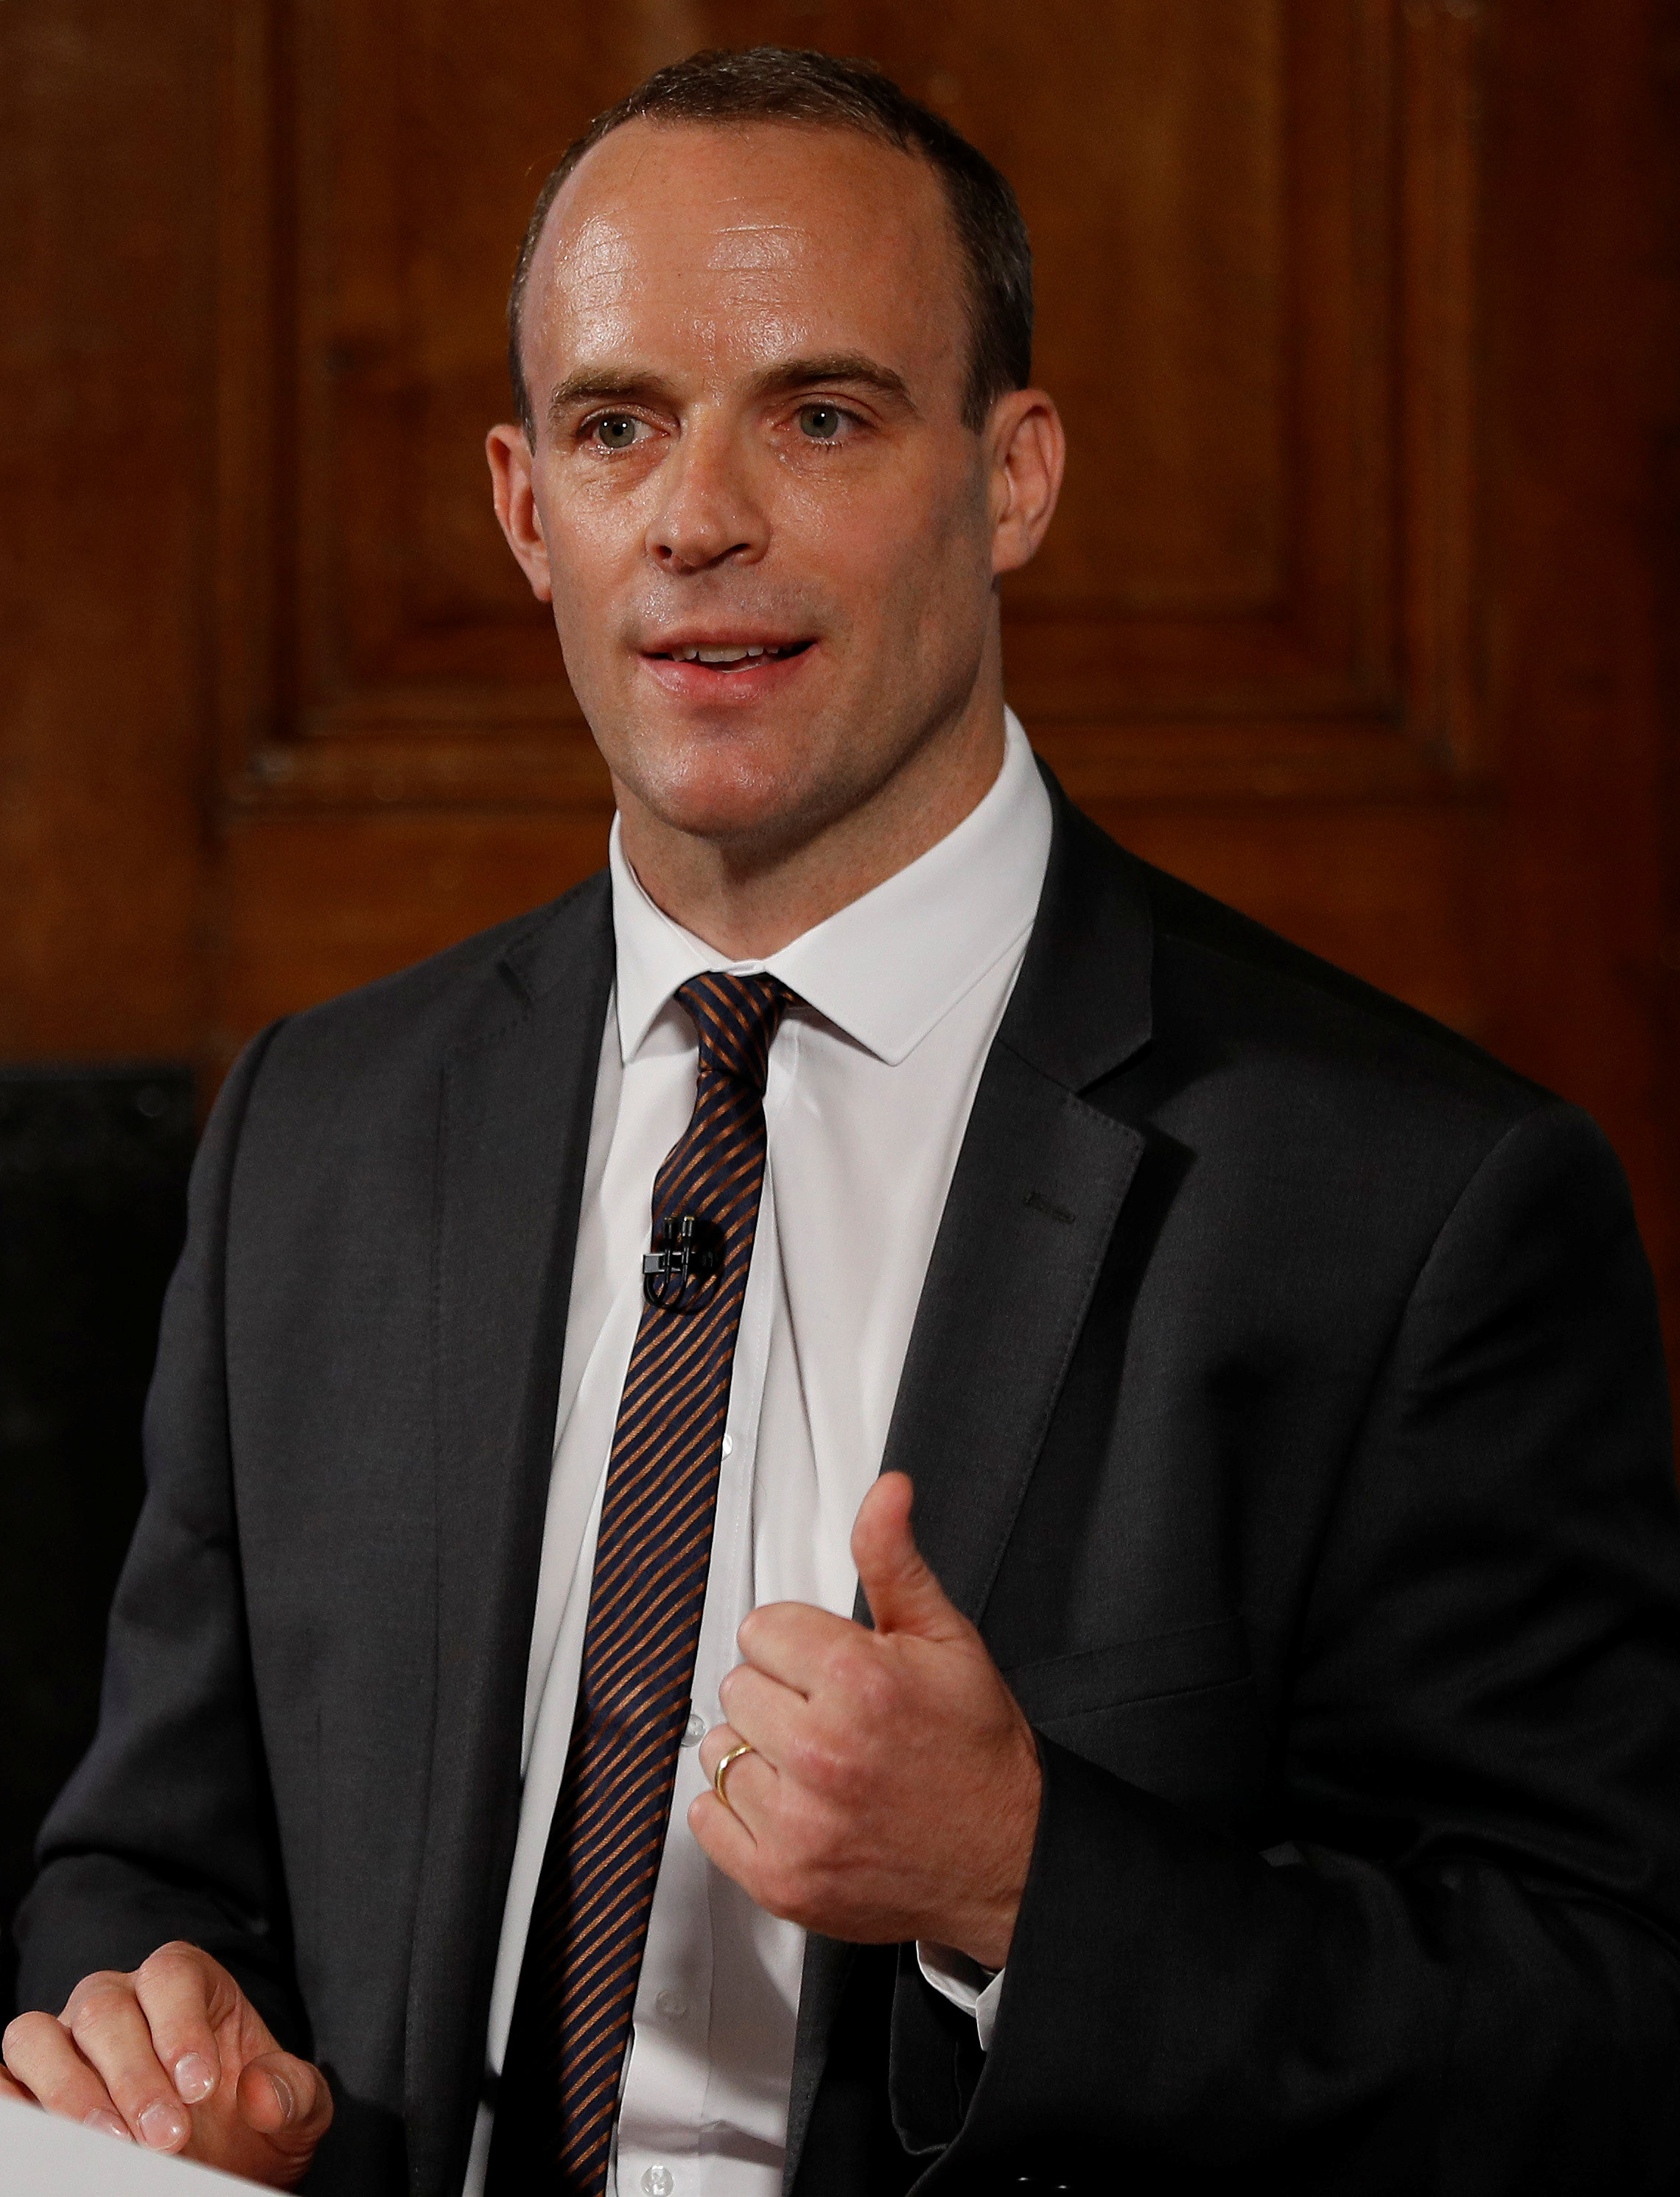 LONDON, UNITED KINGDOM - AUGUST 23:  Brexit Secretary, Dominic Raab makes a speech outlining the government's plans for a no-deal Brexit, August 23, 2018 in London, England. (Photo by Peter Nicholls - WPA Pool/Getty Images)